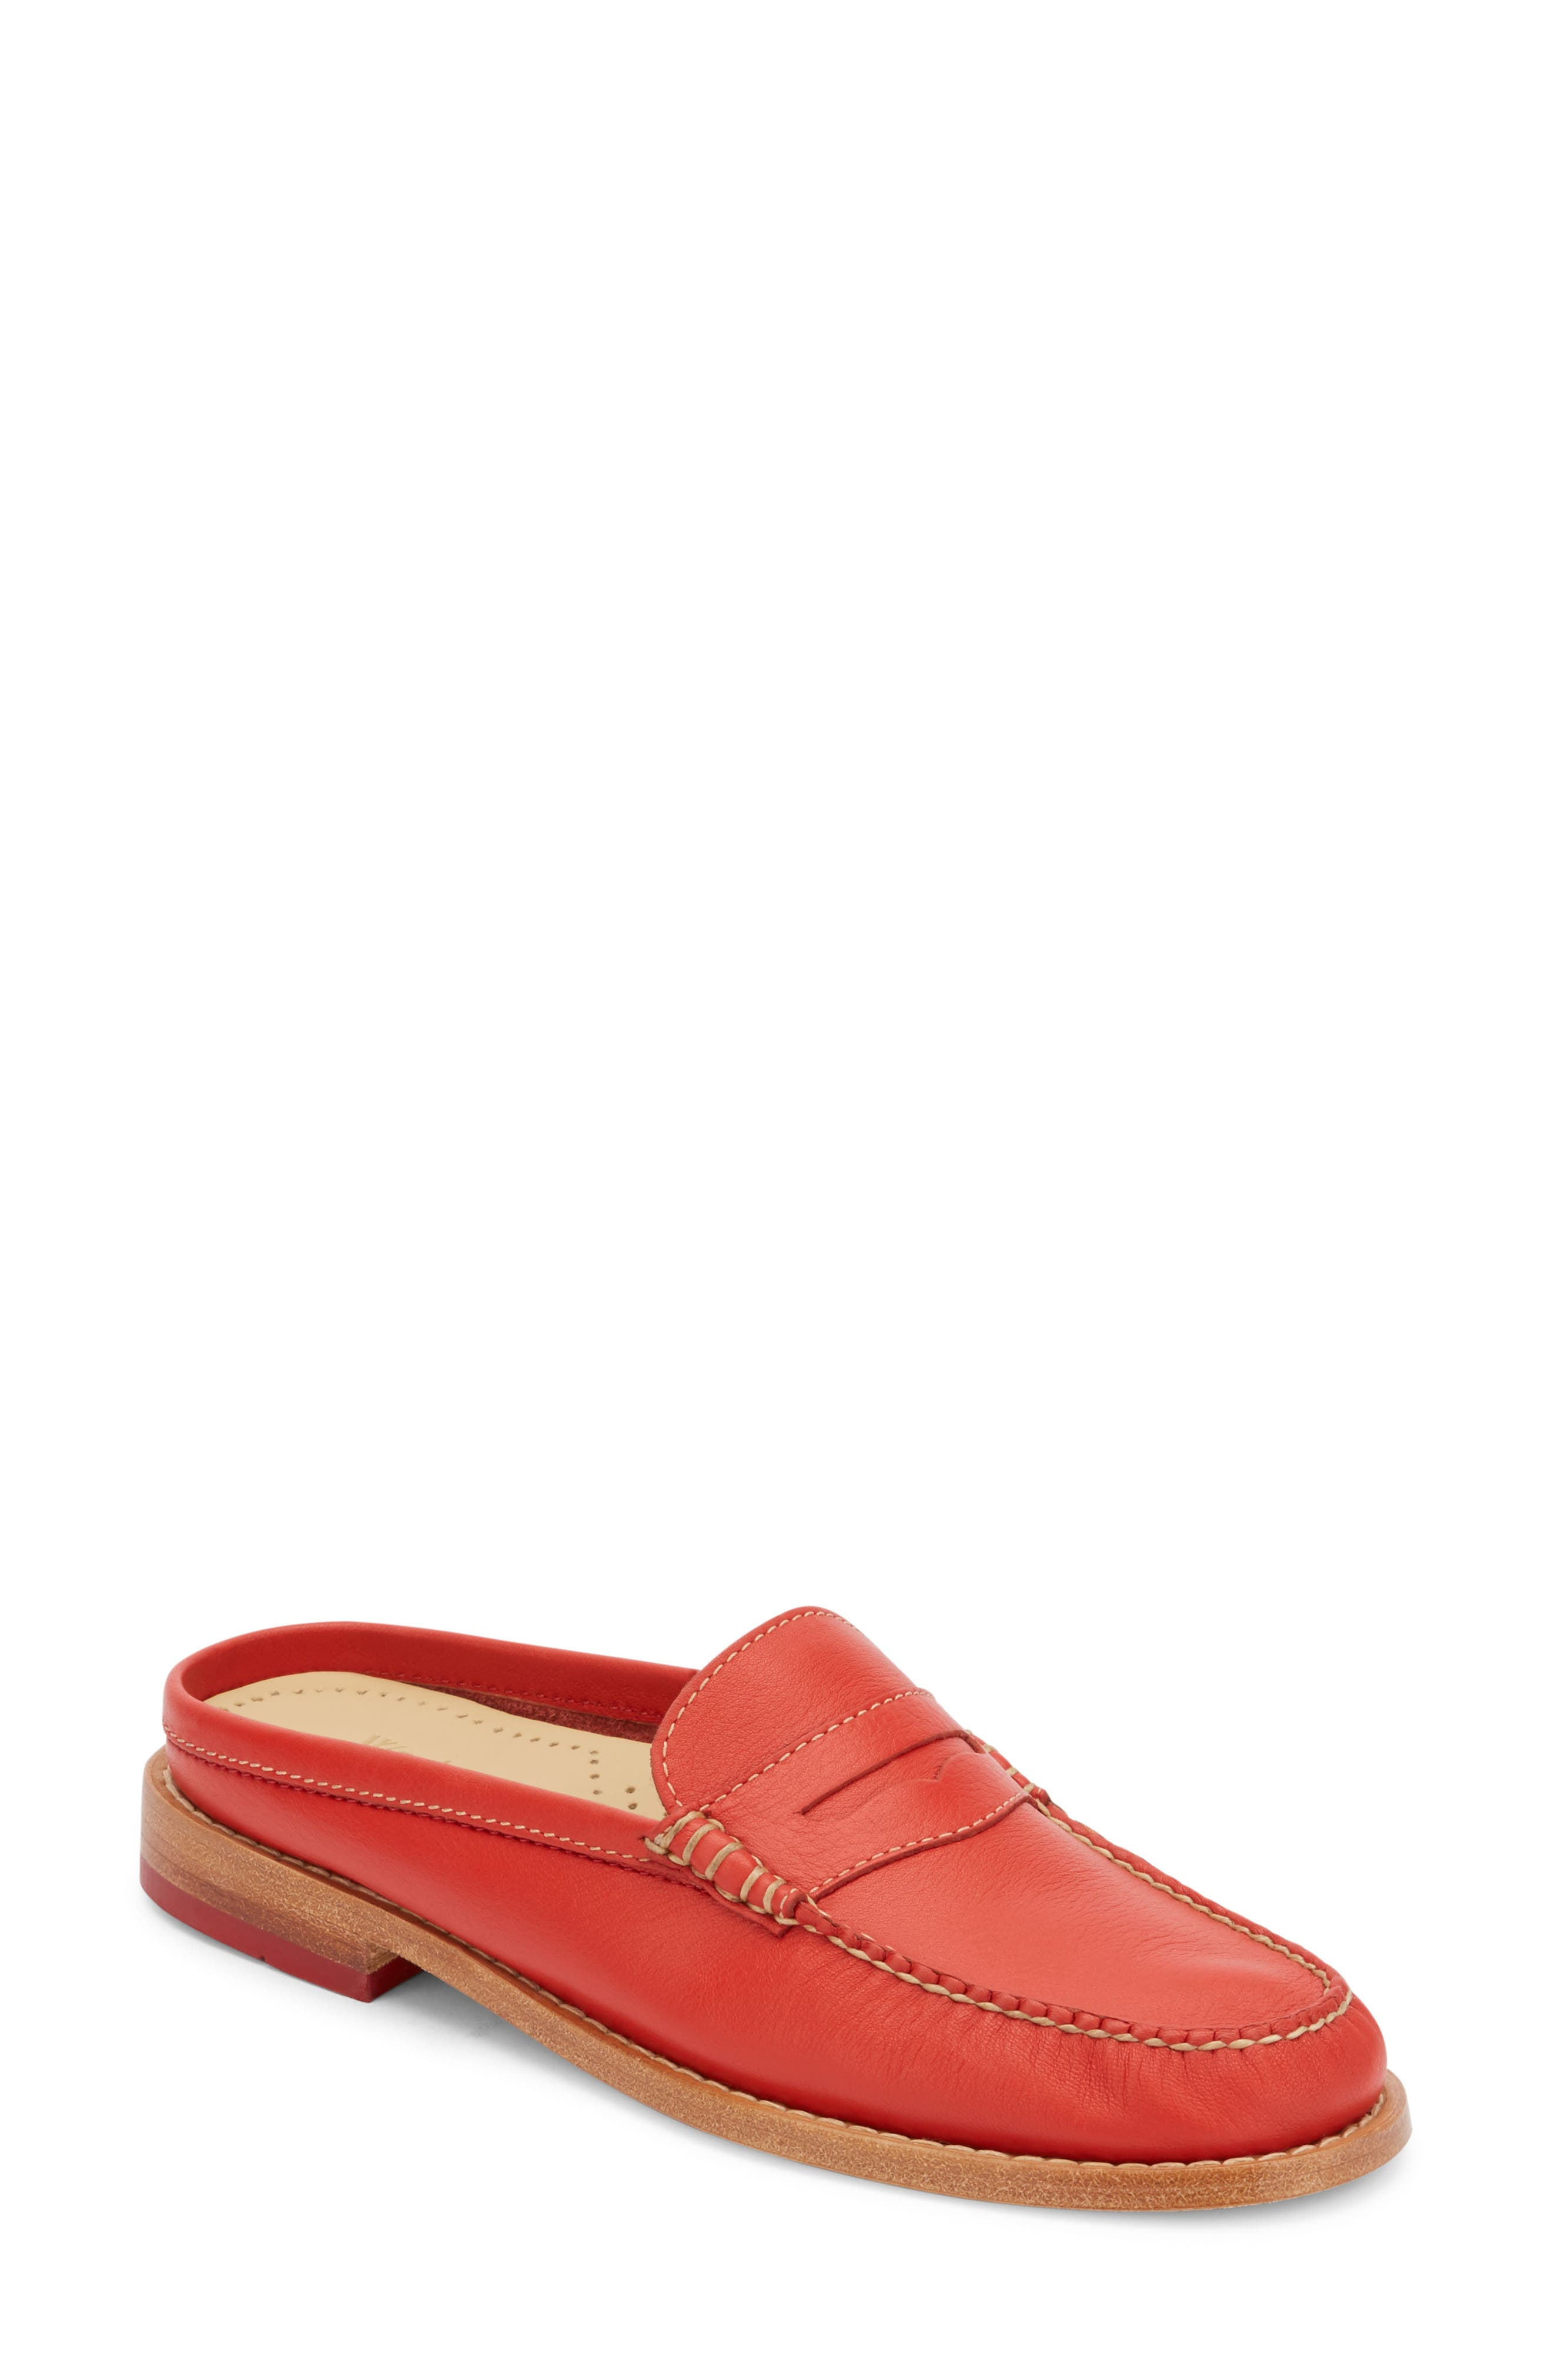 Wynn Loafer Mule,                             Main thumbnail 11, color,